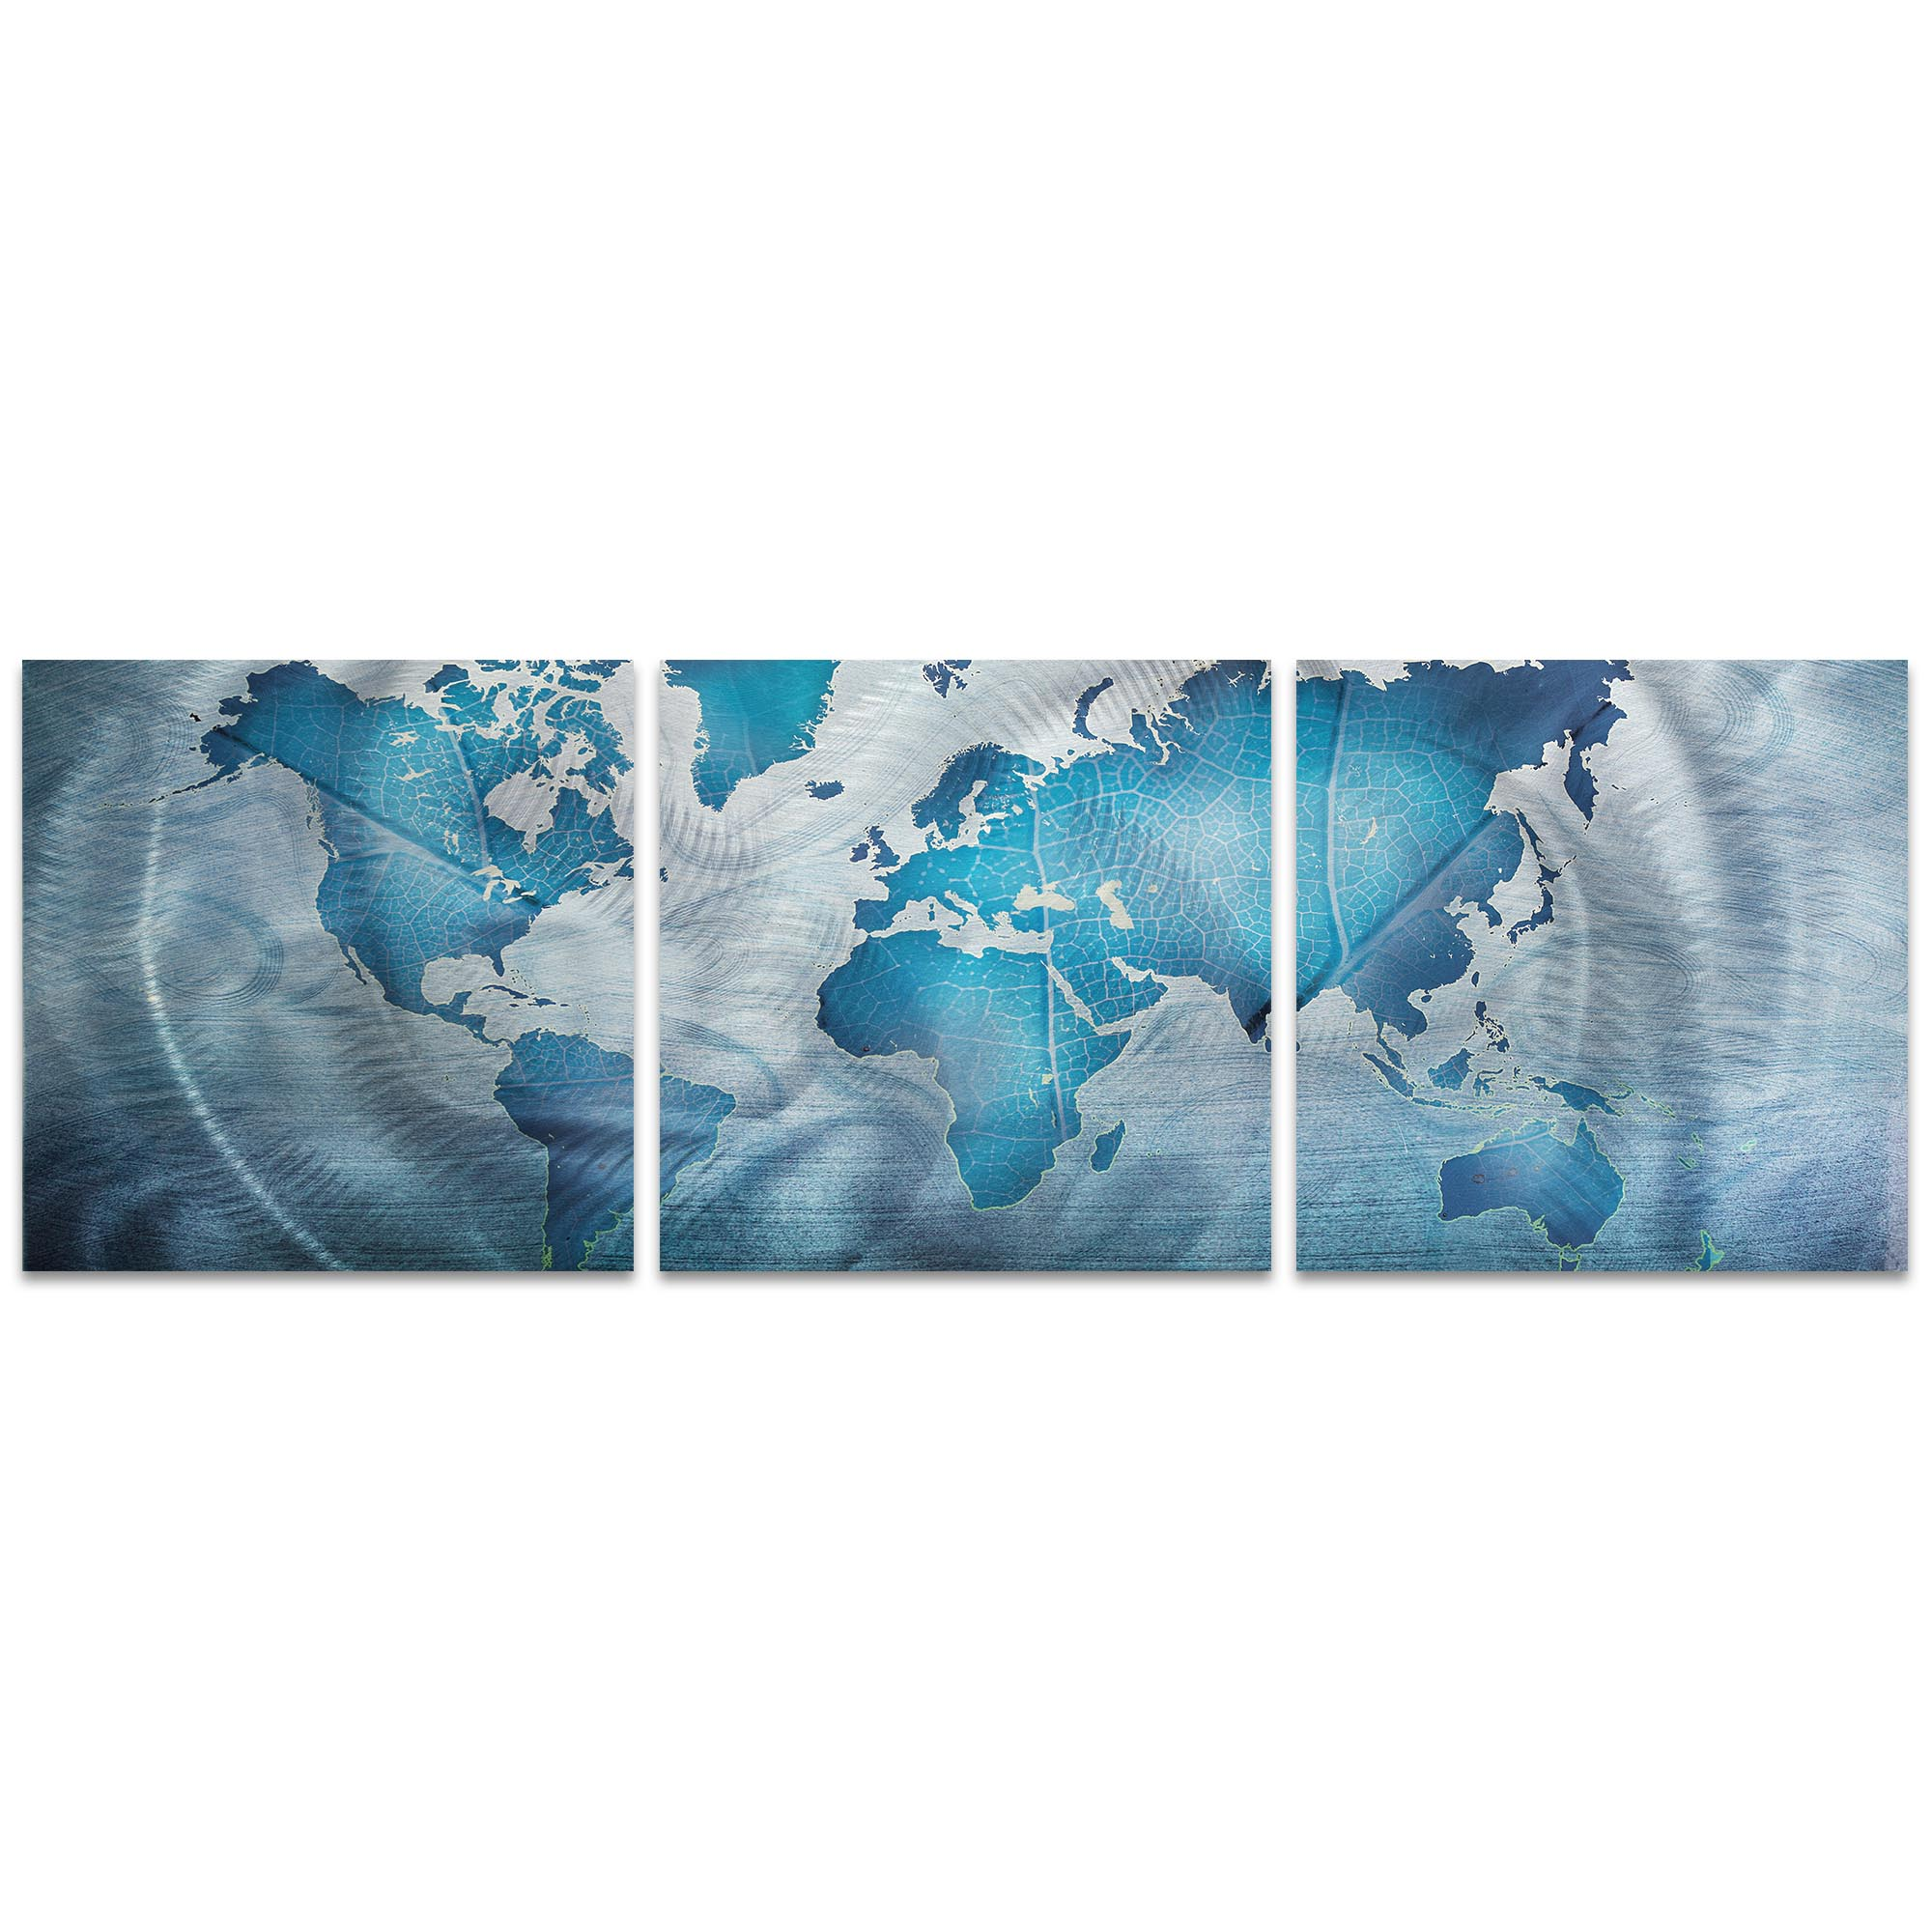 Land and Sea Triptych Large 70x22in. Metal or Acrylic Contemporary Decor